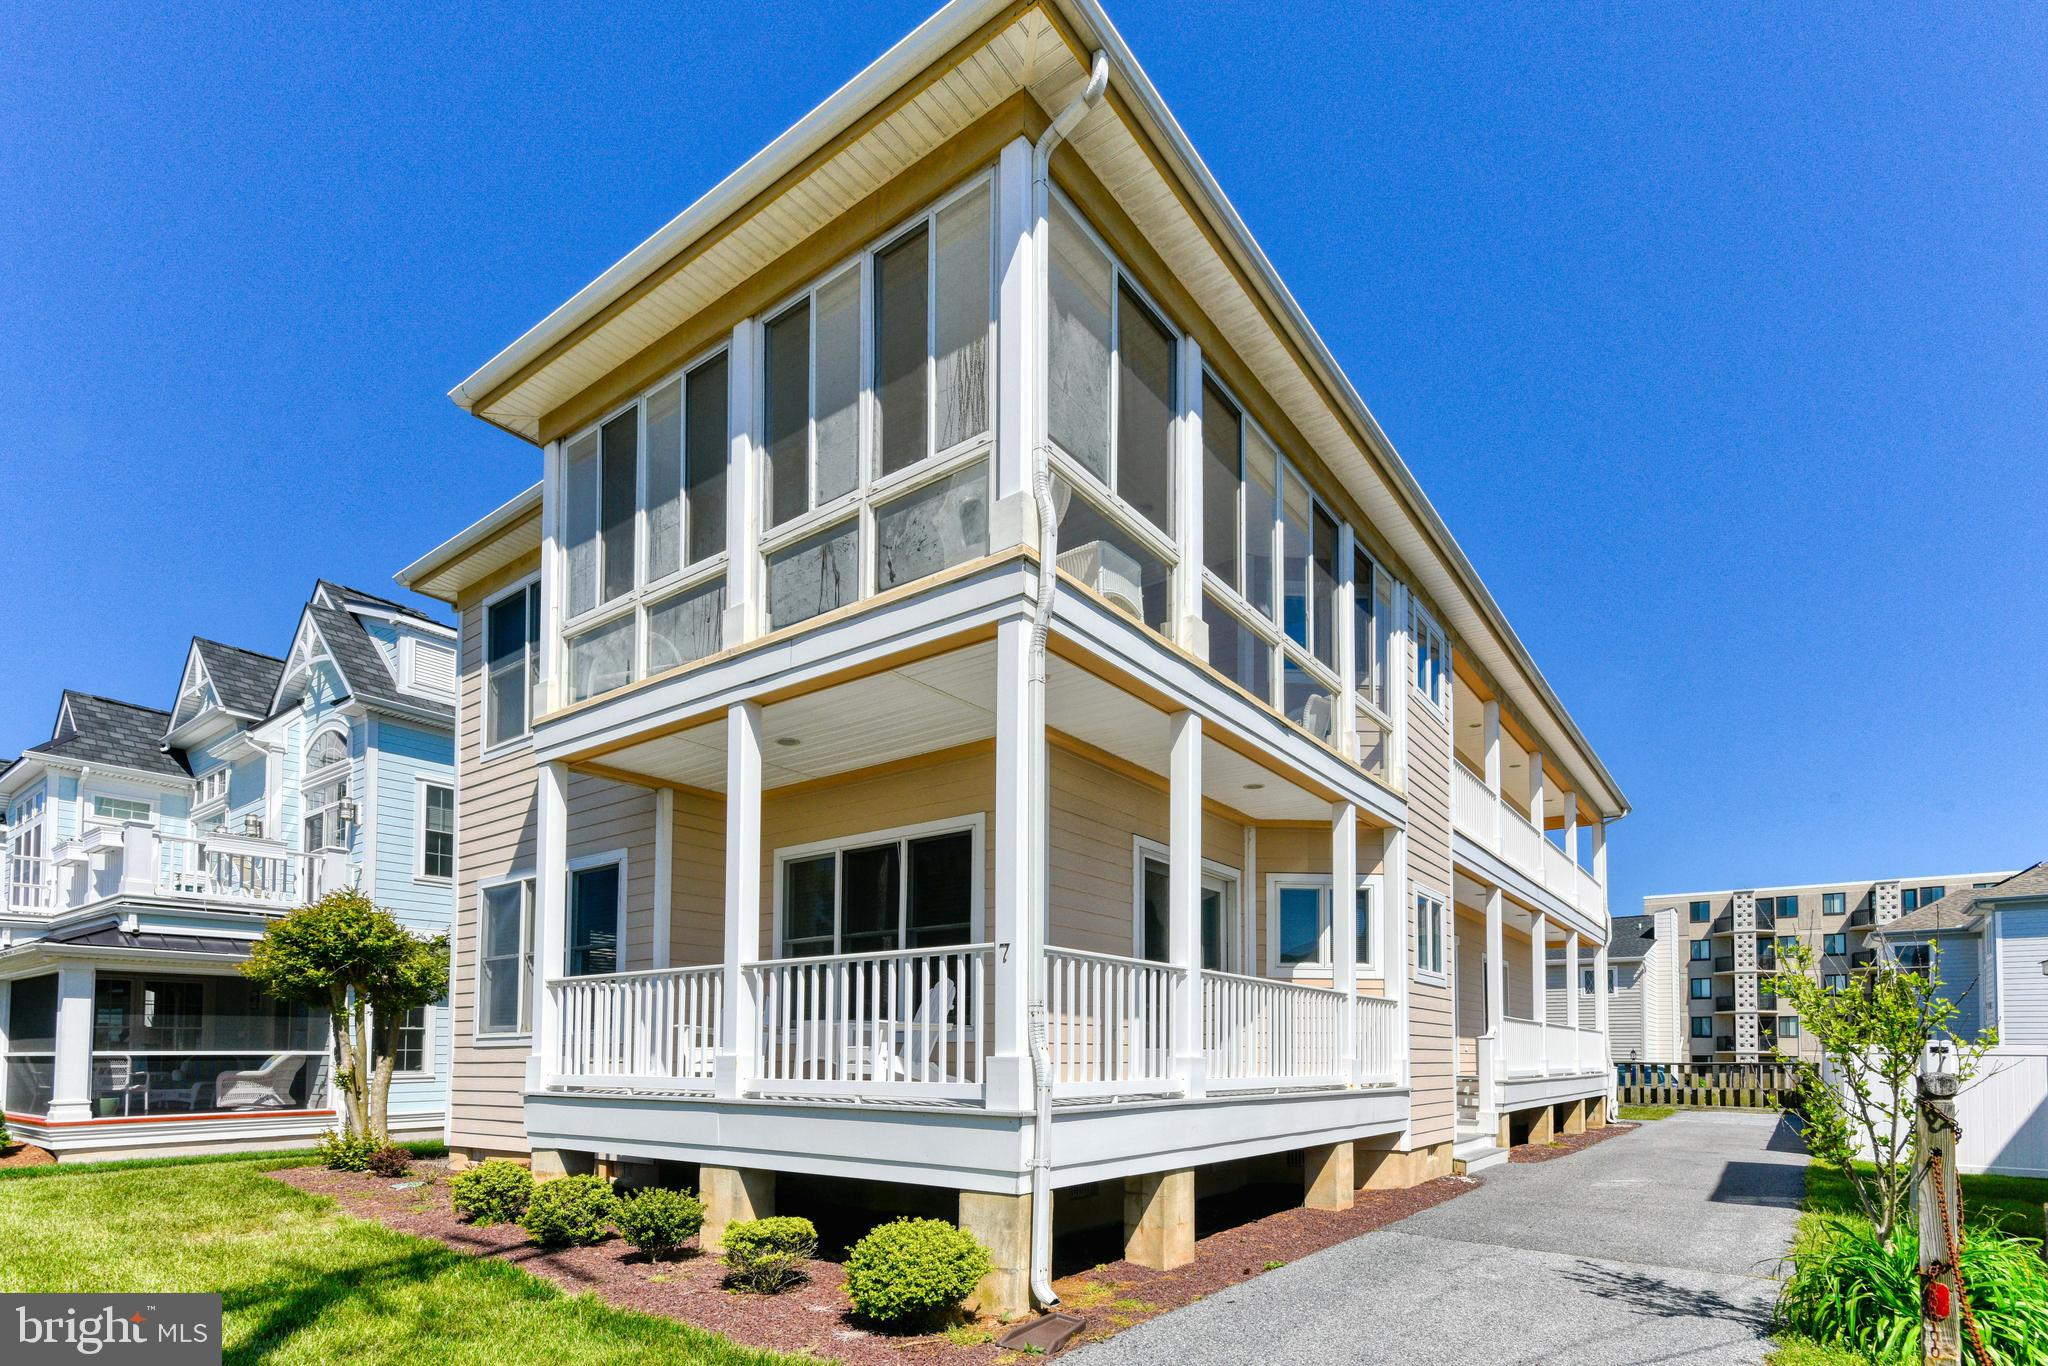 Your sand castle awaits in North Rehoboth. Looking for an oceanblock rental investment property, look no more. This single family home had rental income exceeding $100,000 in 2018. Owner has kept property in immaculate condition and the returning guests come again and again. This inverted floor plan offers four bedrooms and three baths on the first floor and a second floor with master bedroom and bath, dining area, open kitchen, family room and enclosed porch with ocean views. Being just steps to Rehoboth's boardwalk and beach is a tenant and owner must. North Rehoboth keeps you far enough away from the commercial area yet close enough to easily walk to all of Rehoboth's main attractions. Capitalize on today's low interest rates and this property's successful income stream. A winning combination!  Global Luxury!